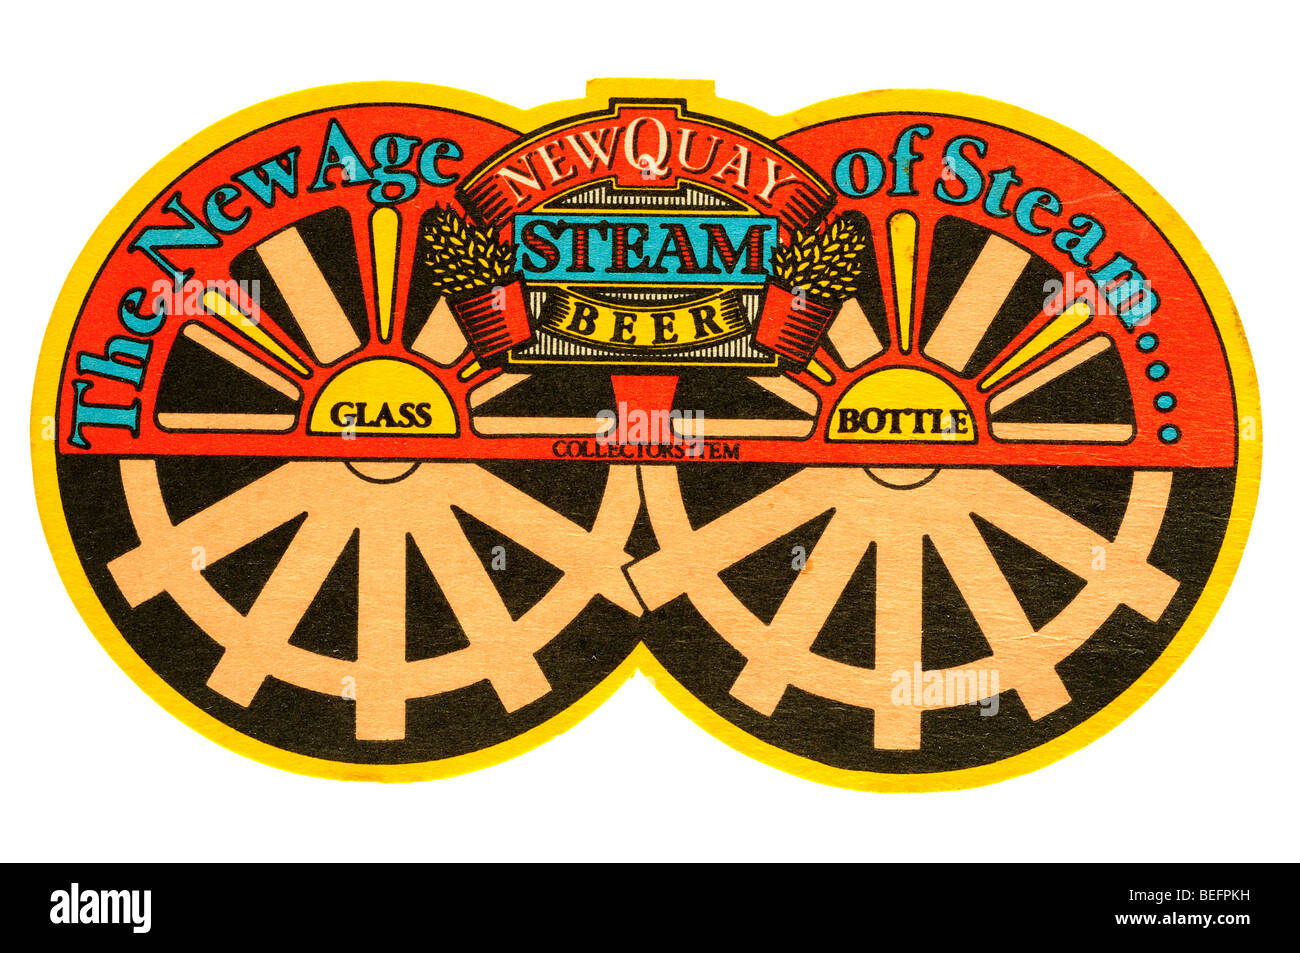 the new age of steam new quay steam beer - Stock Image